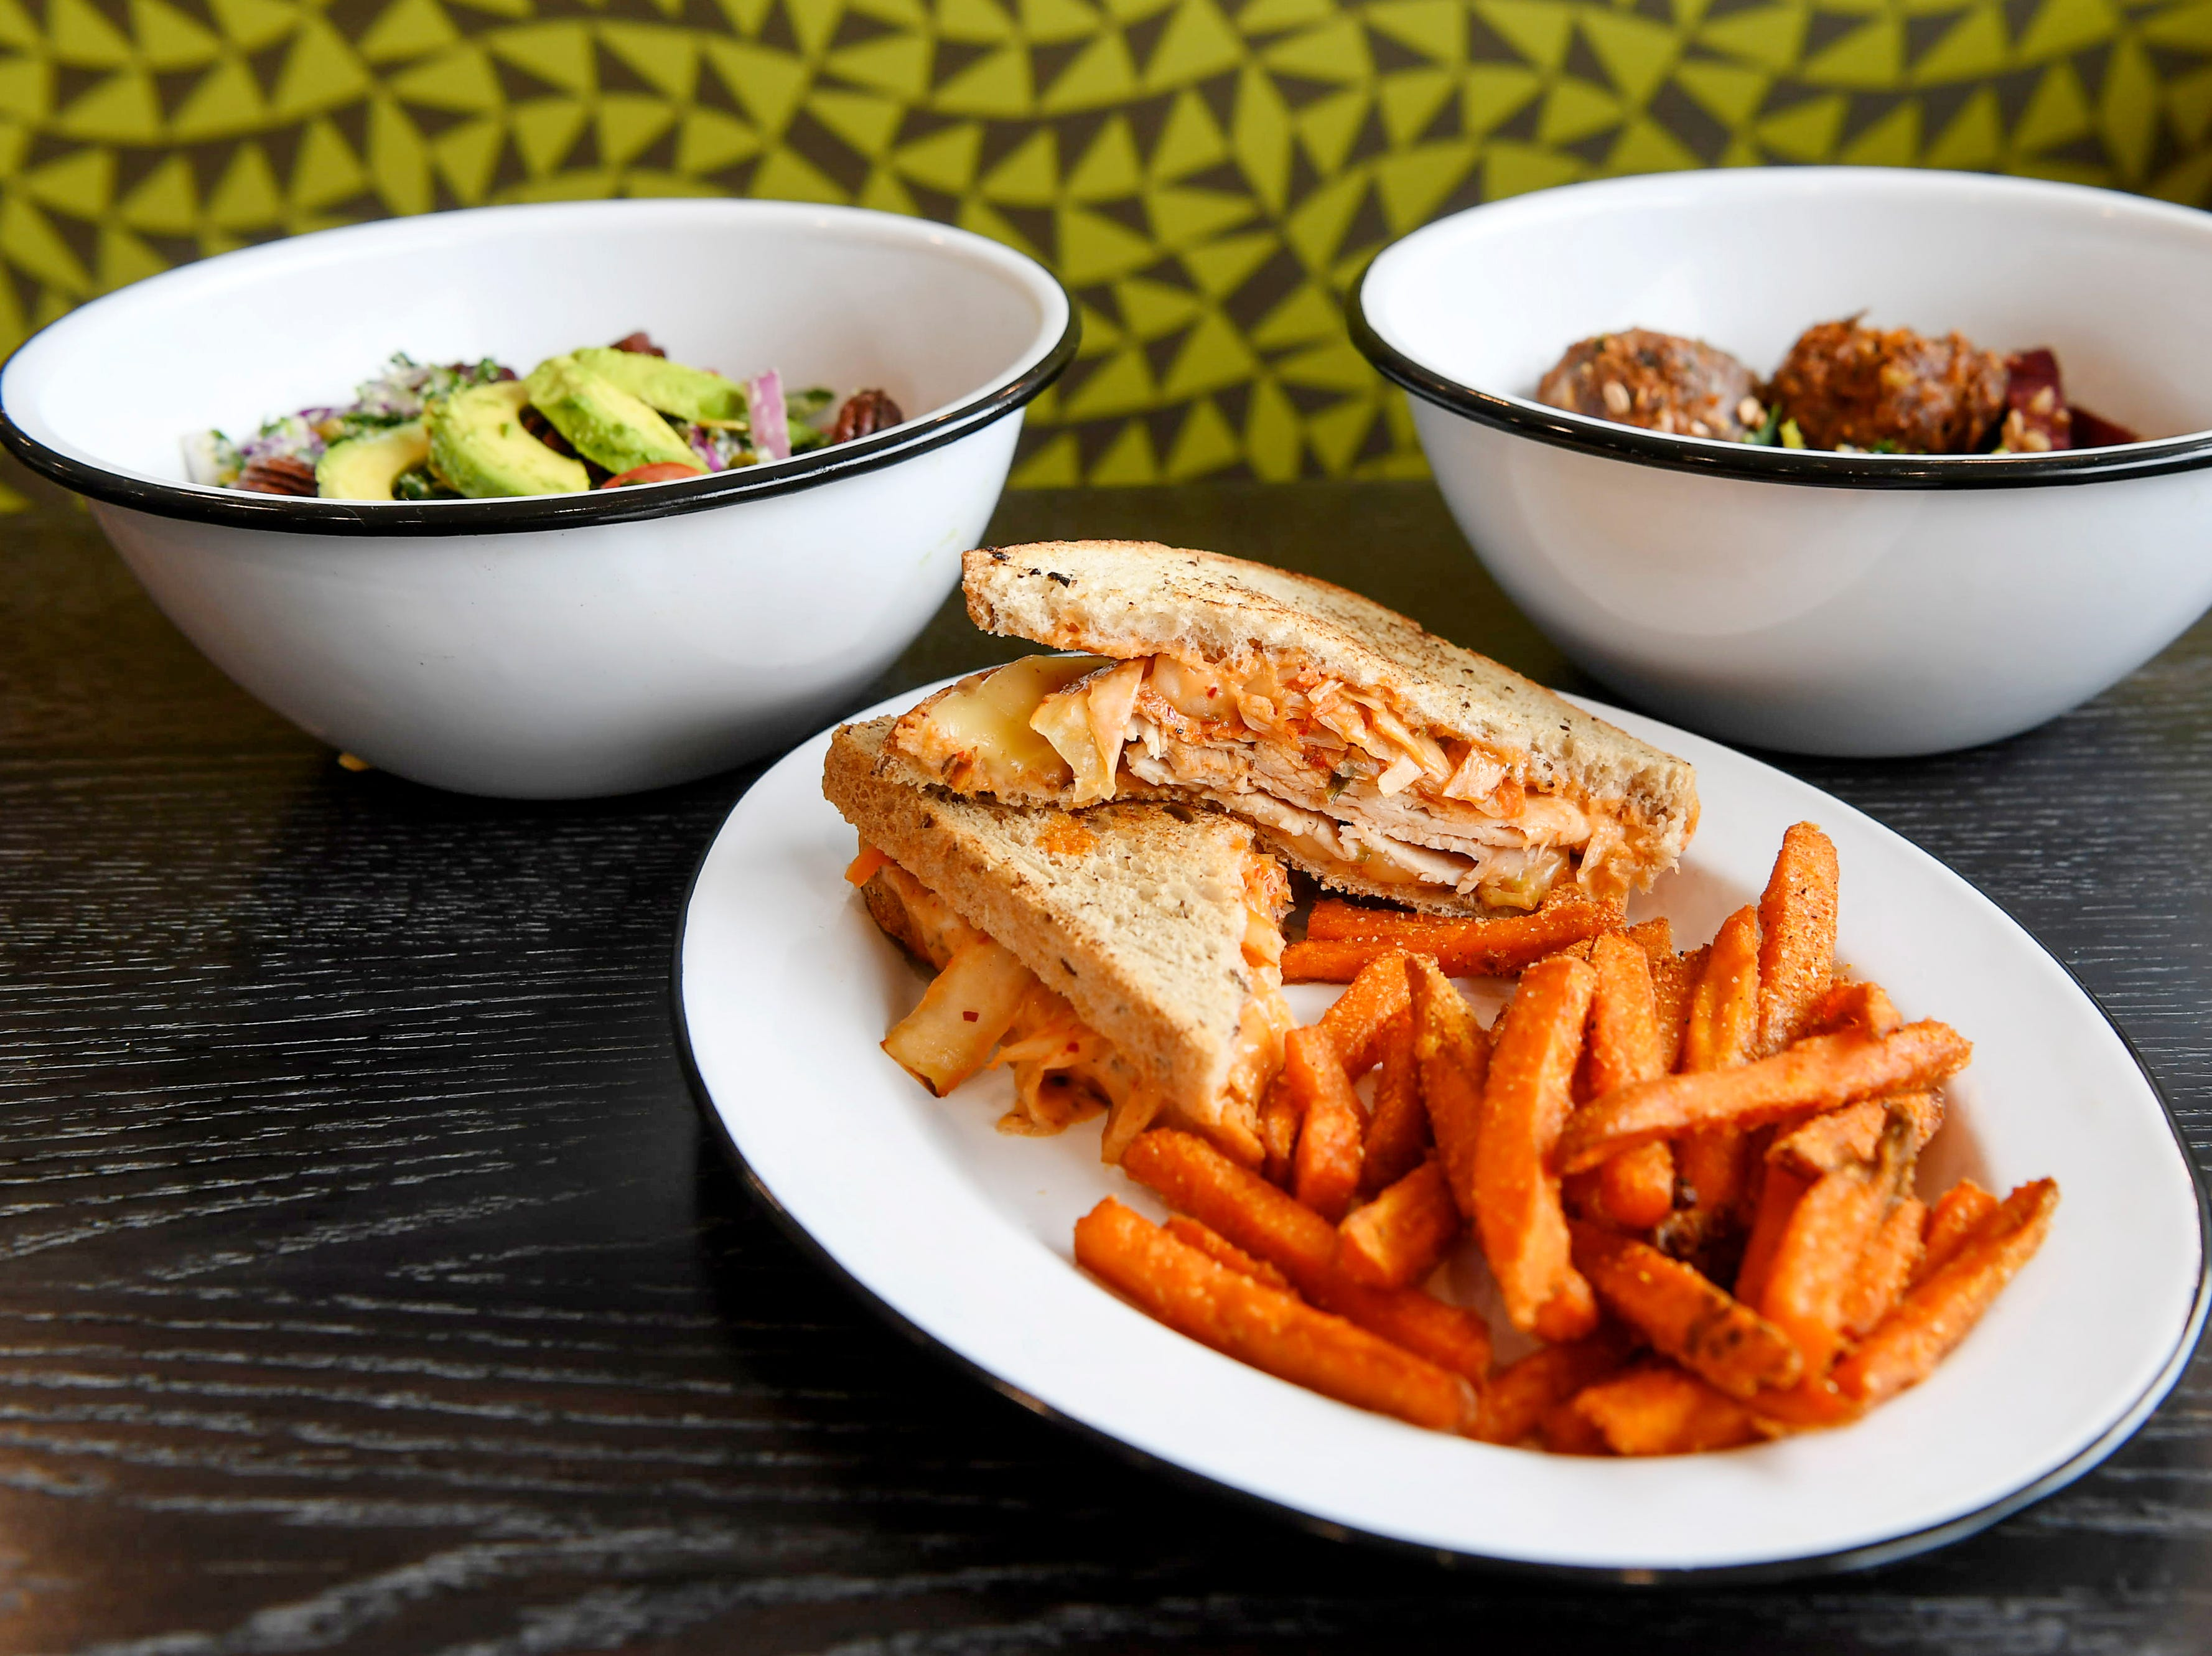 From left, Green Sage's kale salad, turkey kimchi reuben with sweet potato fries, and the Mesopotamia bowl, all offered at the cafe's new Merrimon location in North Asheville Feb. 14, 2019.